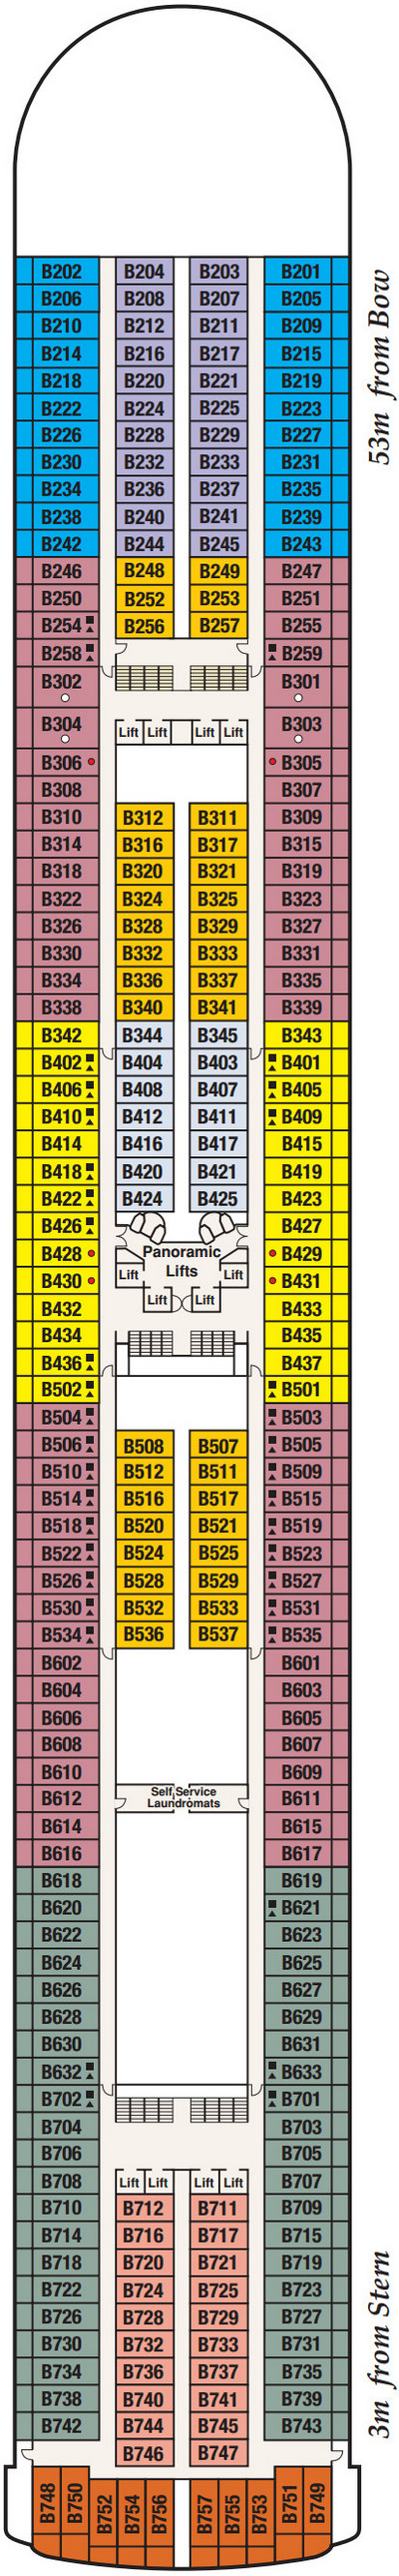 Caribbean Princess Baja Deck 11 layout